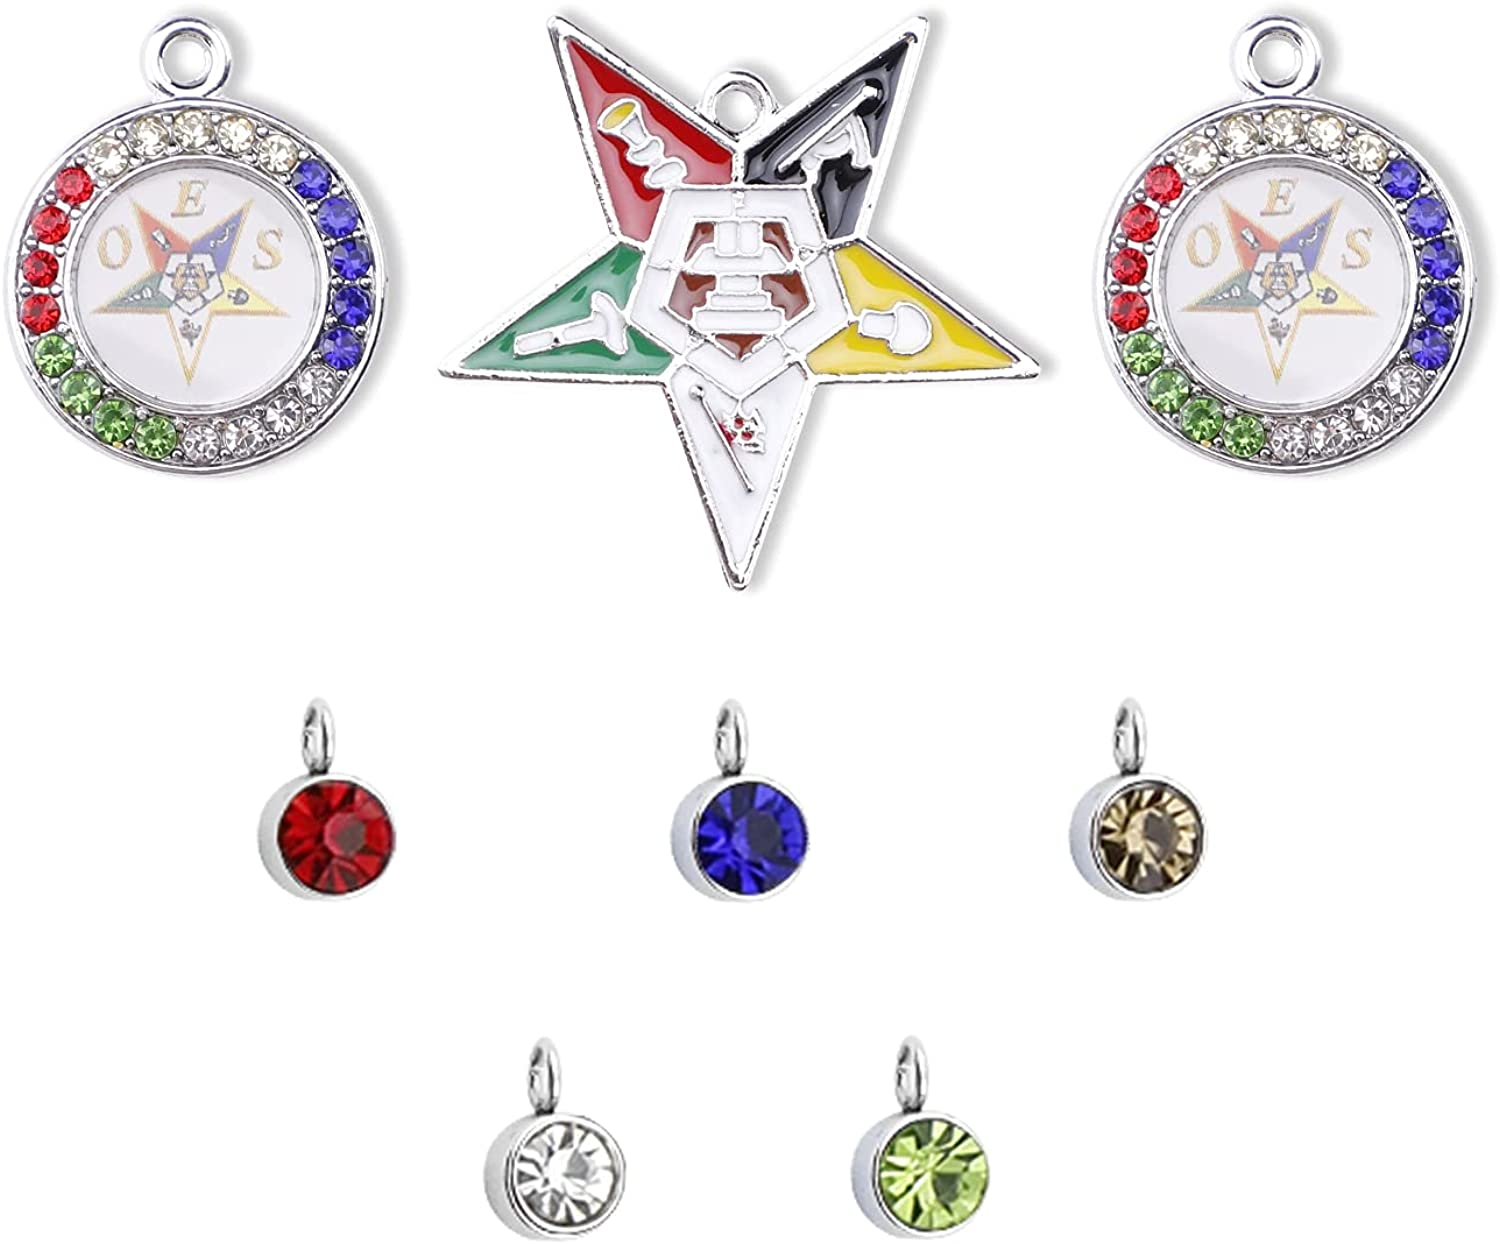 8pcs Order of The Eastern Jewelry OES Fees free!! Star Sorority 100% quality warranty